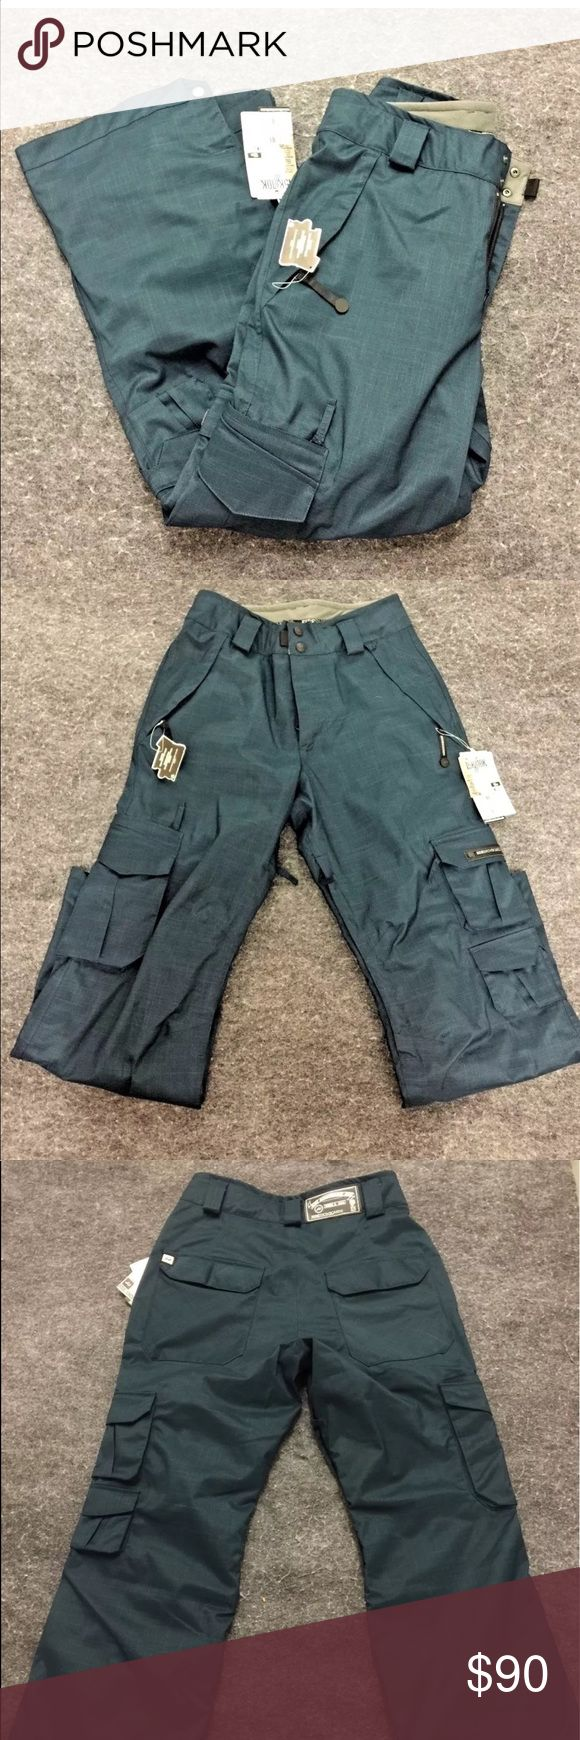 Ride Snowboards Belltown Pants Ride Snowboards Belltown Pant  Standout Performance with Options  Color: Dark Peacock  Size: Small     RN: 86918 CA: 30195     -       15K / 10K mm waterproof/ breathable rating  -       Full Taped Seams  -       Strada HD II w/ DWR  -       2010-2011 Season  -       MSRP 199.95 USD  -       Standard Fit    Material:  -       Shell: 100% Polyester  -       Lining: 70% Polyester 30% Nylon Ride Snowboard Other